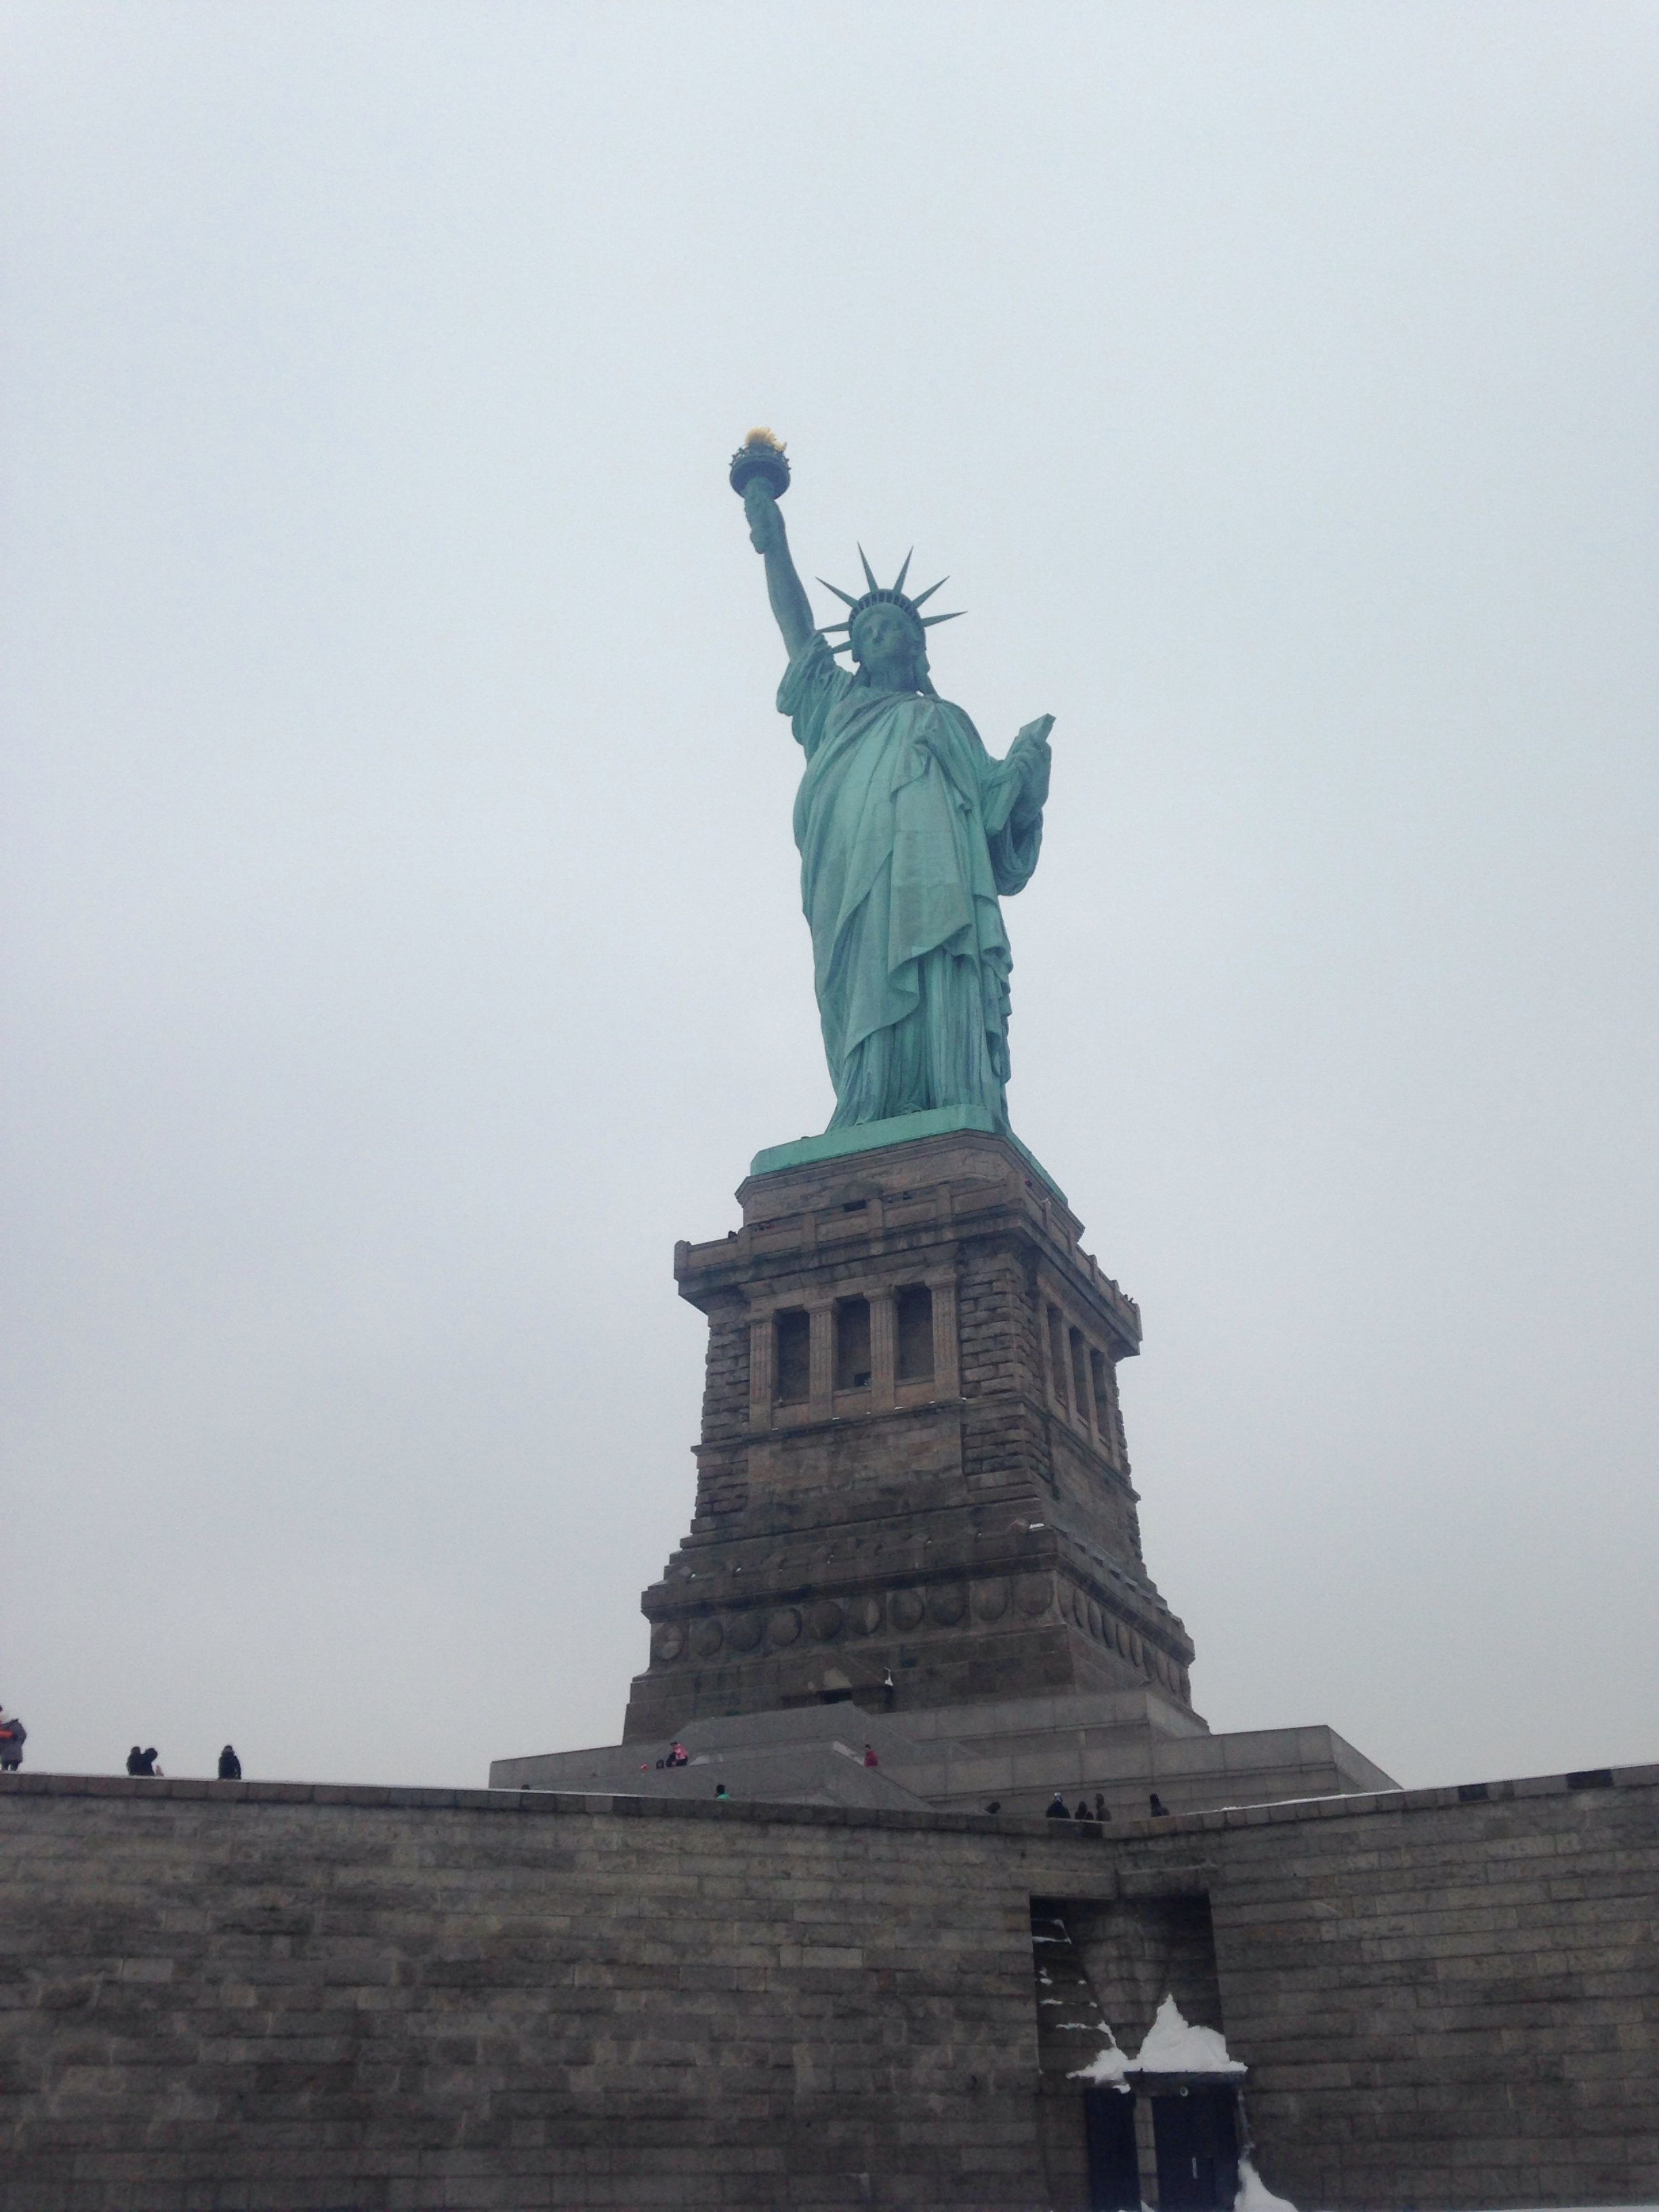 Statue of Liberty New York City My travels